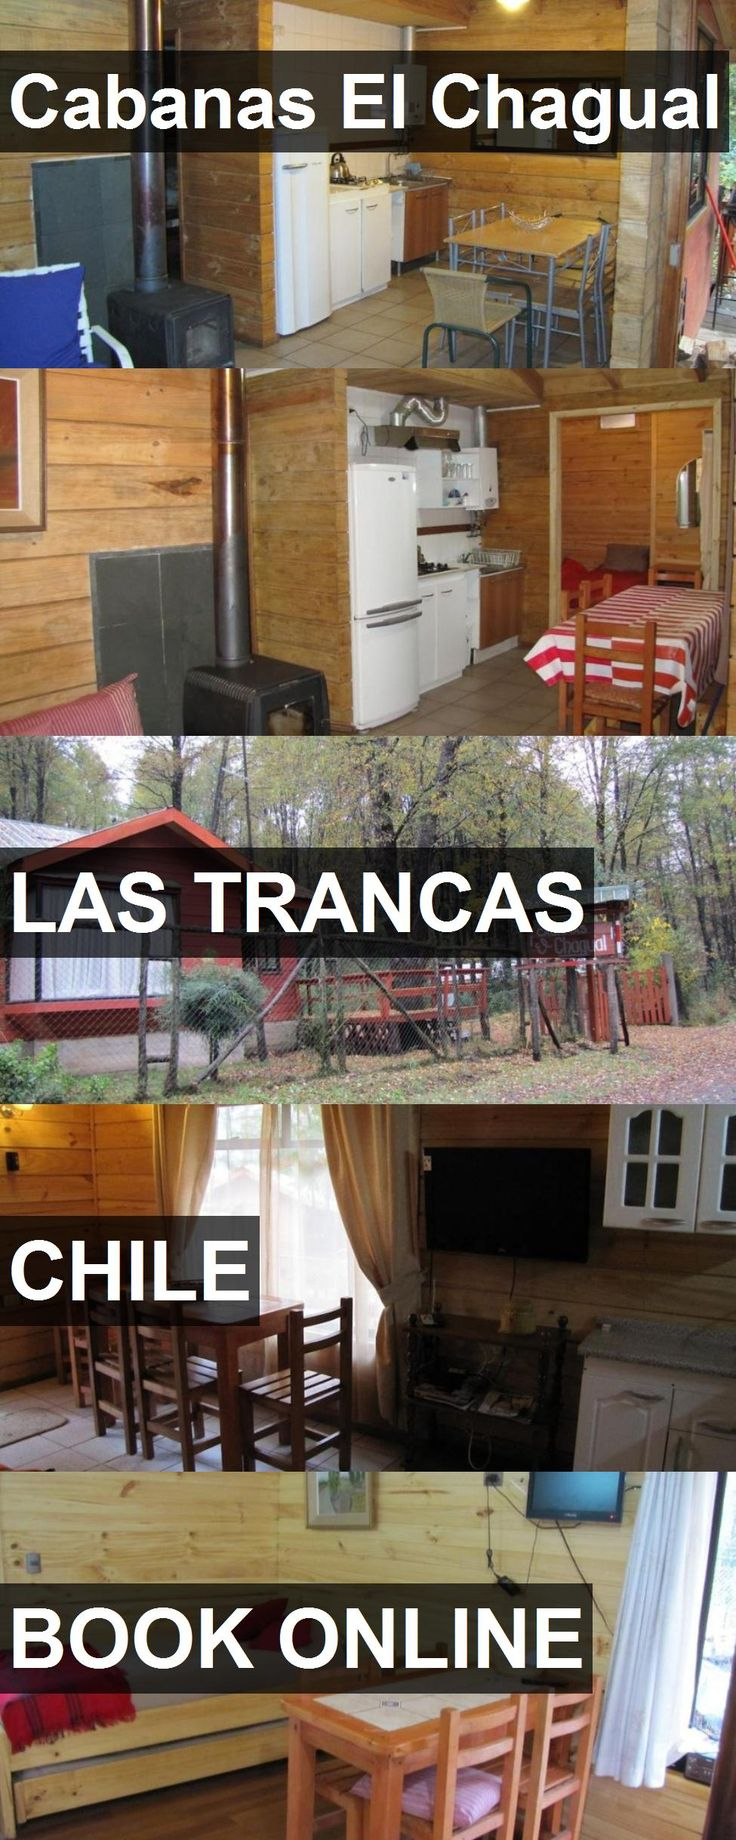 Hotel Cabanas El Chagual in Las Trancas, Chile. For more information, photos, reviews and best prices please follow the link. #Chile #LasTrancas #travel #vacation #hotel